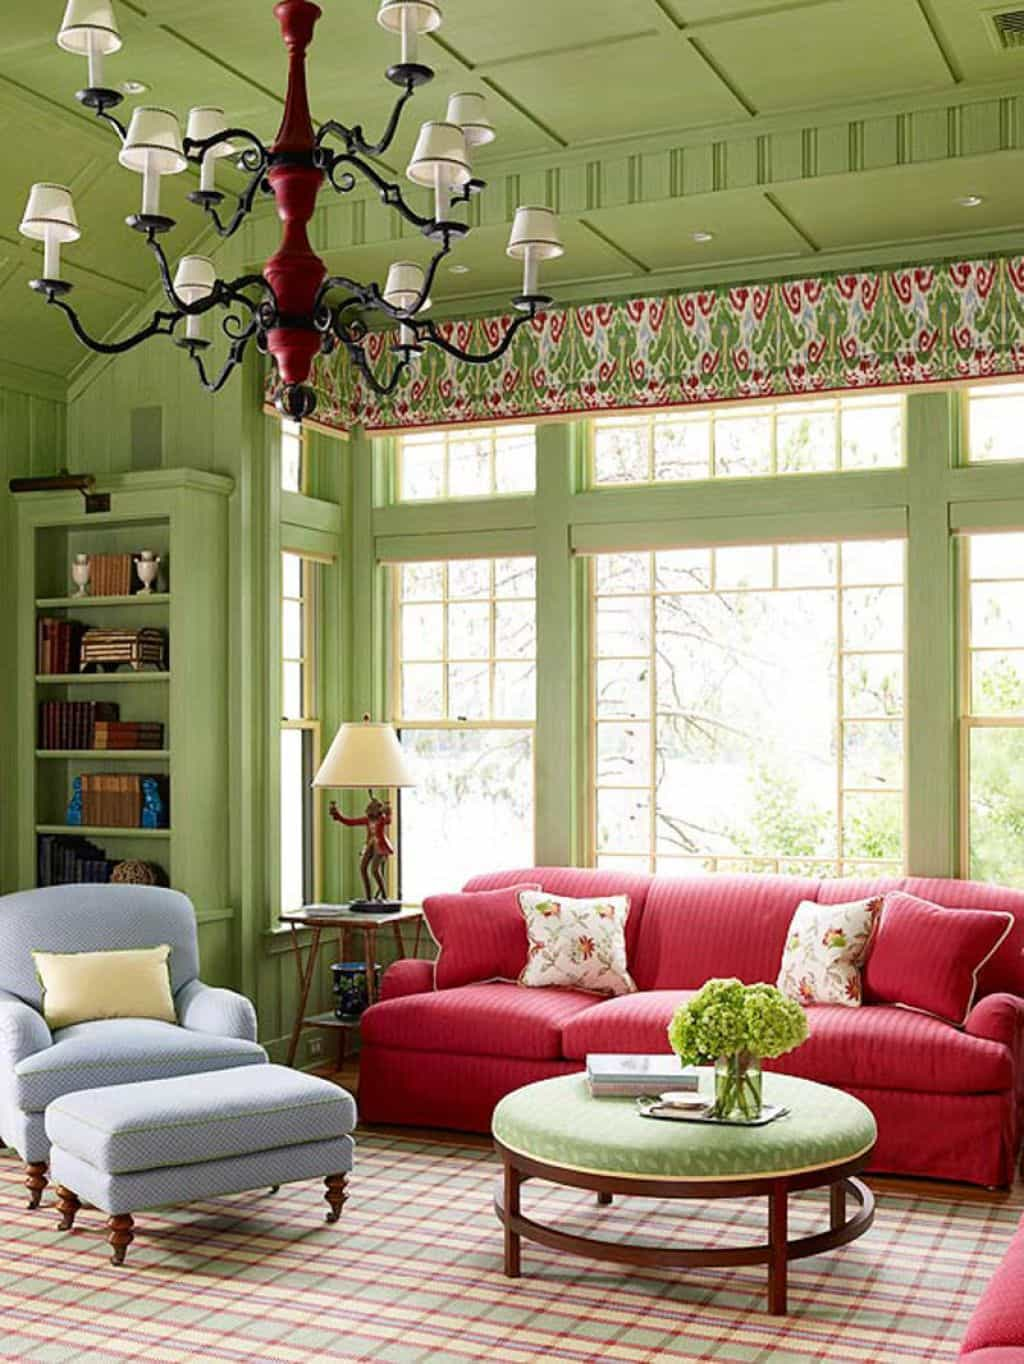 living-room-with-red-sofa-and-green